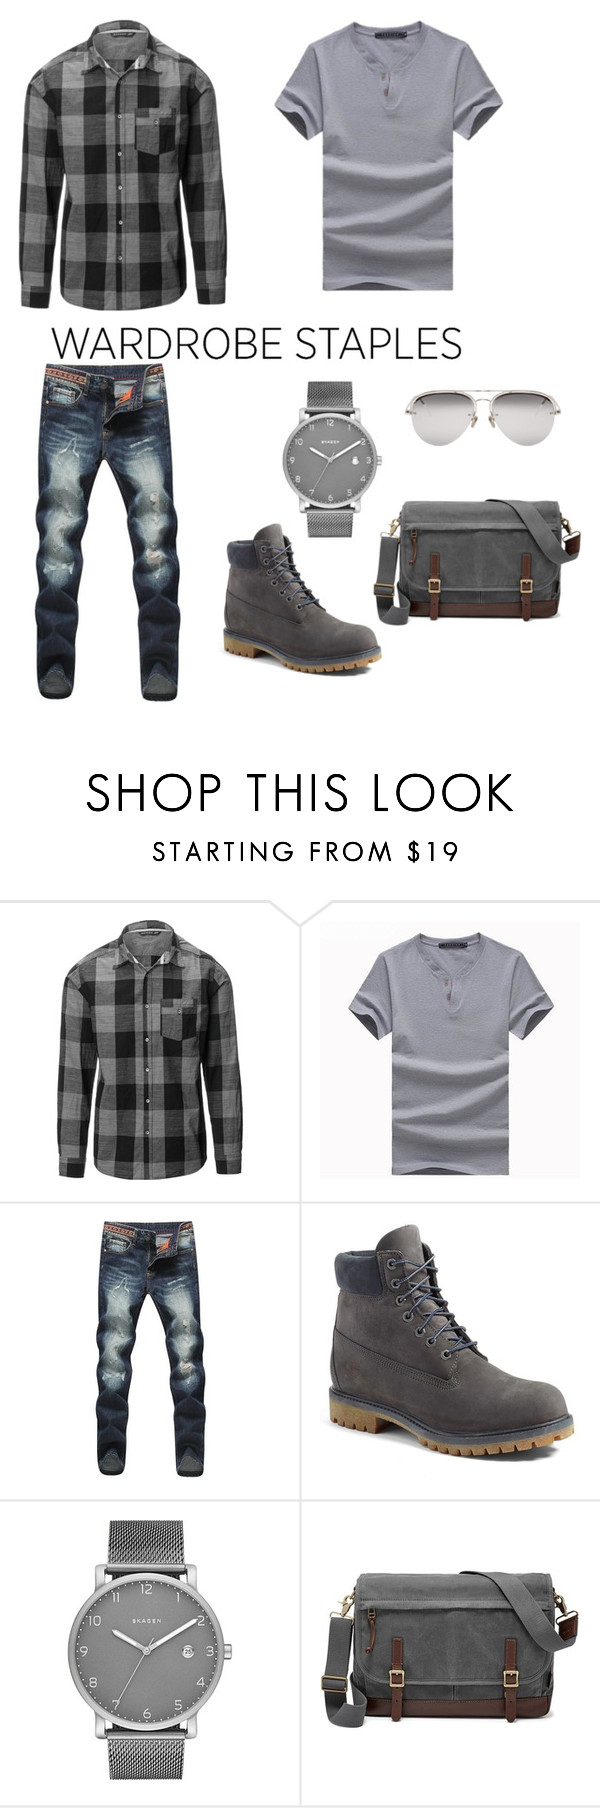 """""""Plaid Shirt by Siphon"""" by mel-c-n on Polyvore featuring Timberland, Skagen, FOSSIL, Linda Farrow, men's fashion, menswear, plaid, polyvorecontest and WardrobeStaples"""